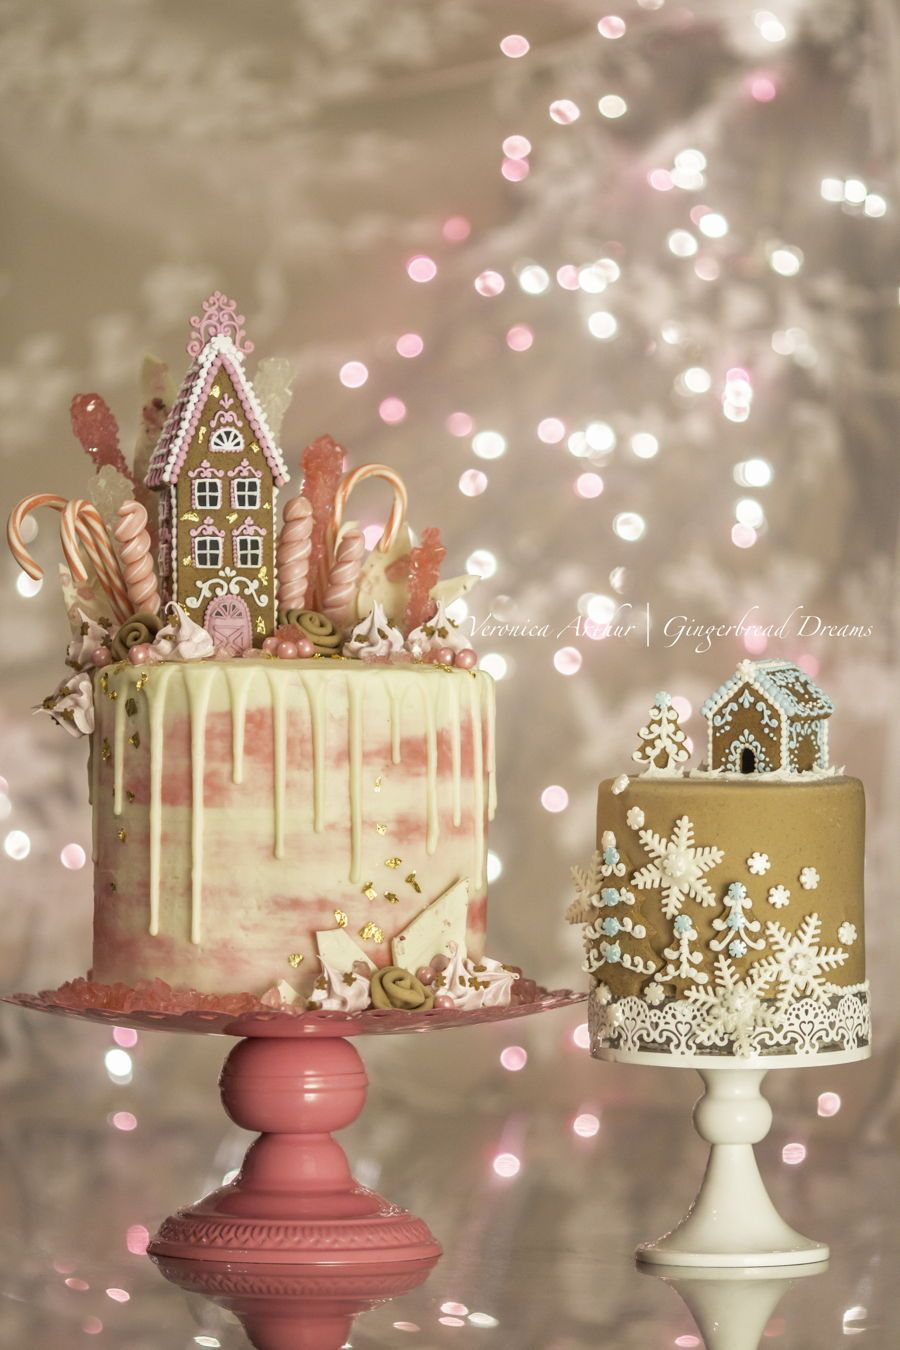 Pink Gingerbread Dream House Drip Cake and tiny cake with